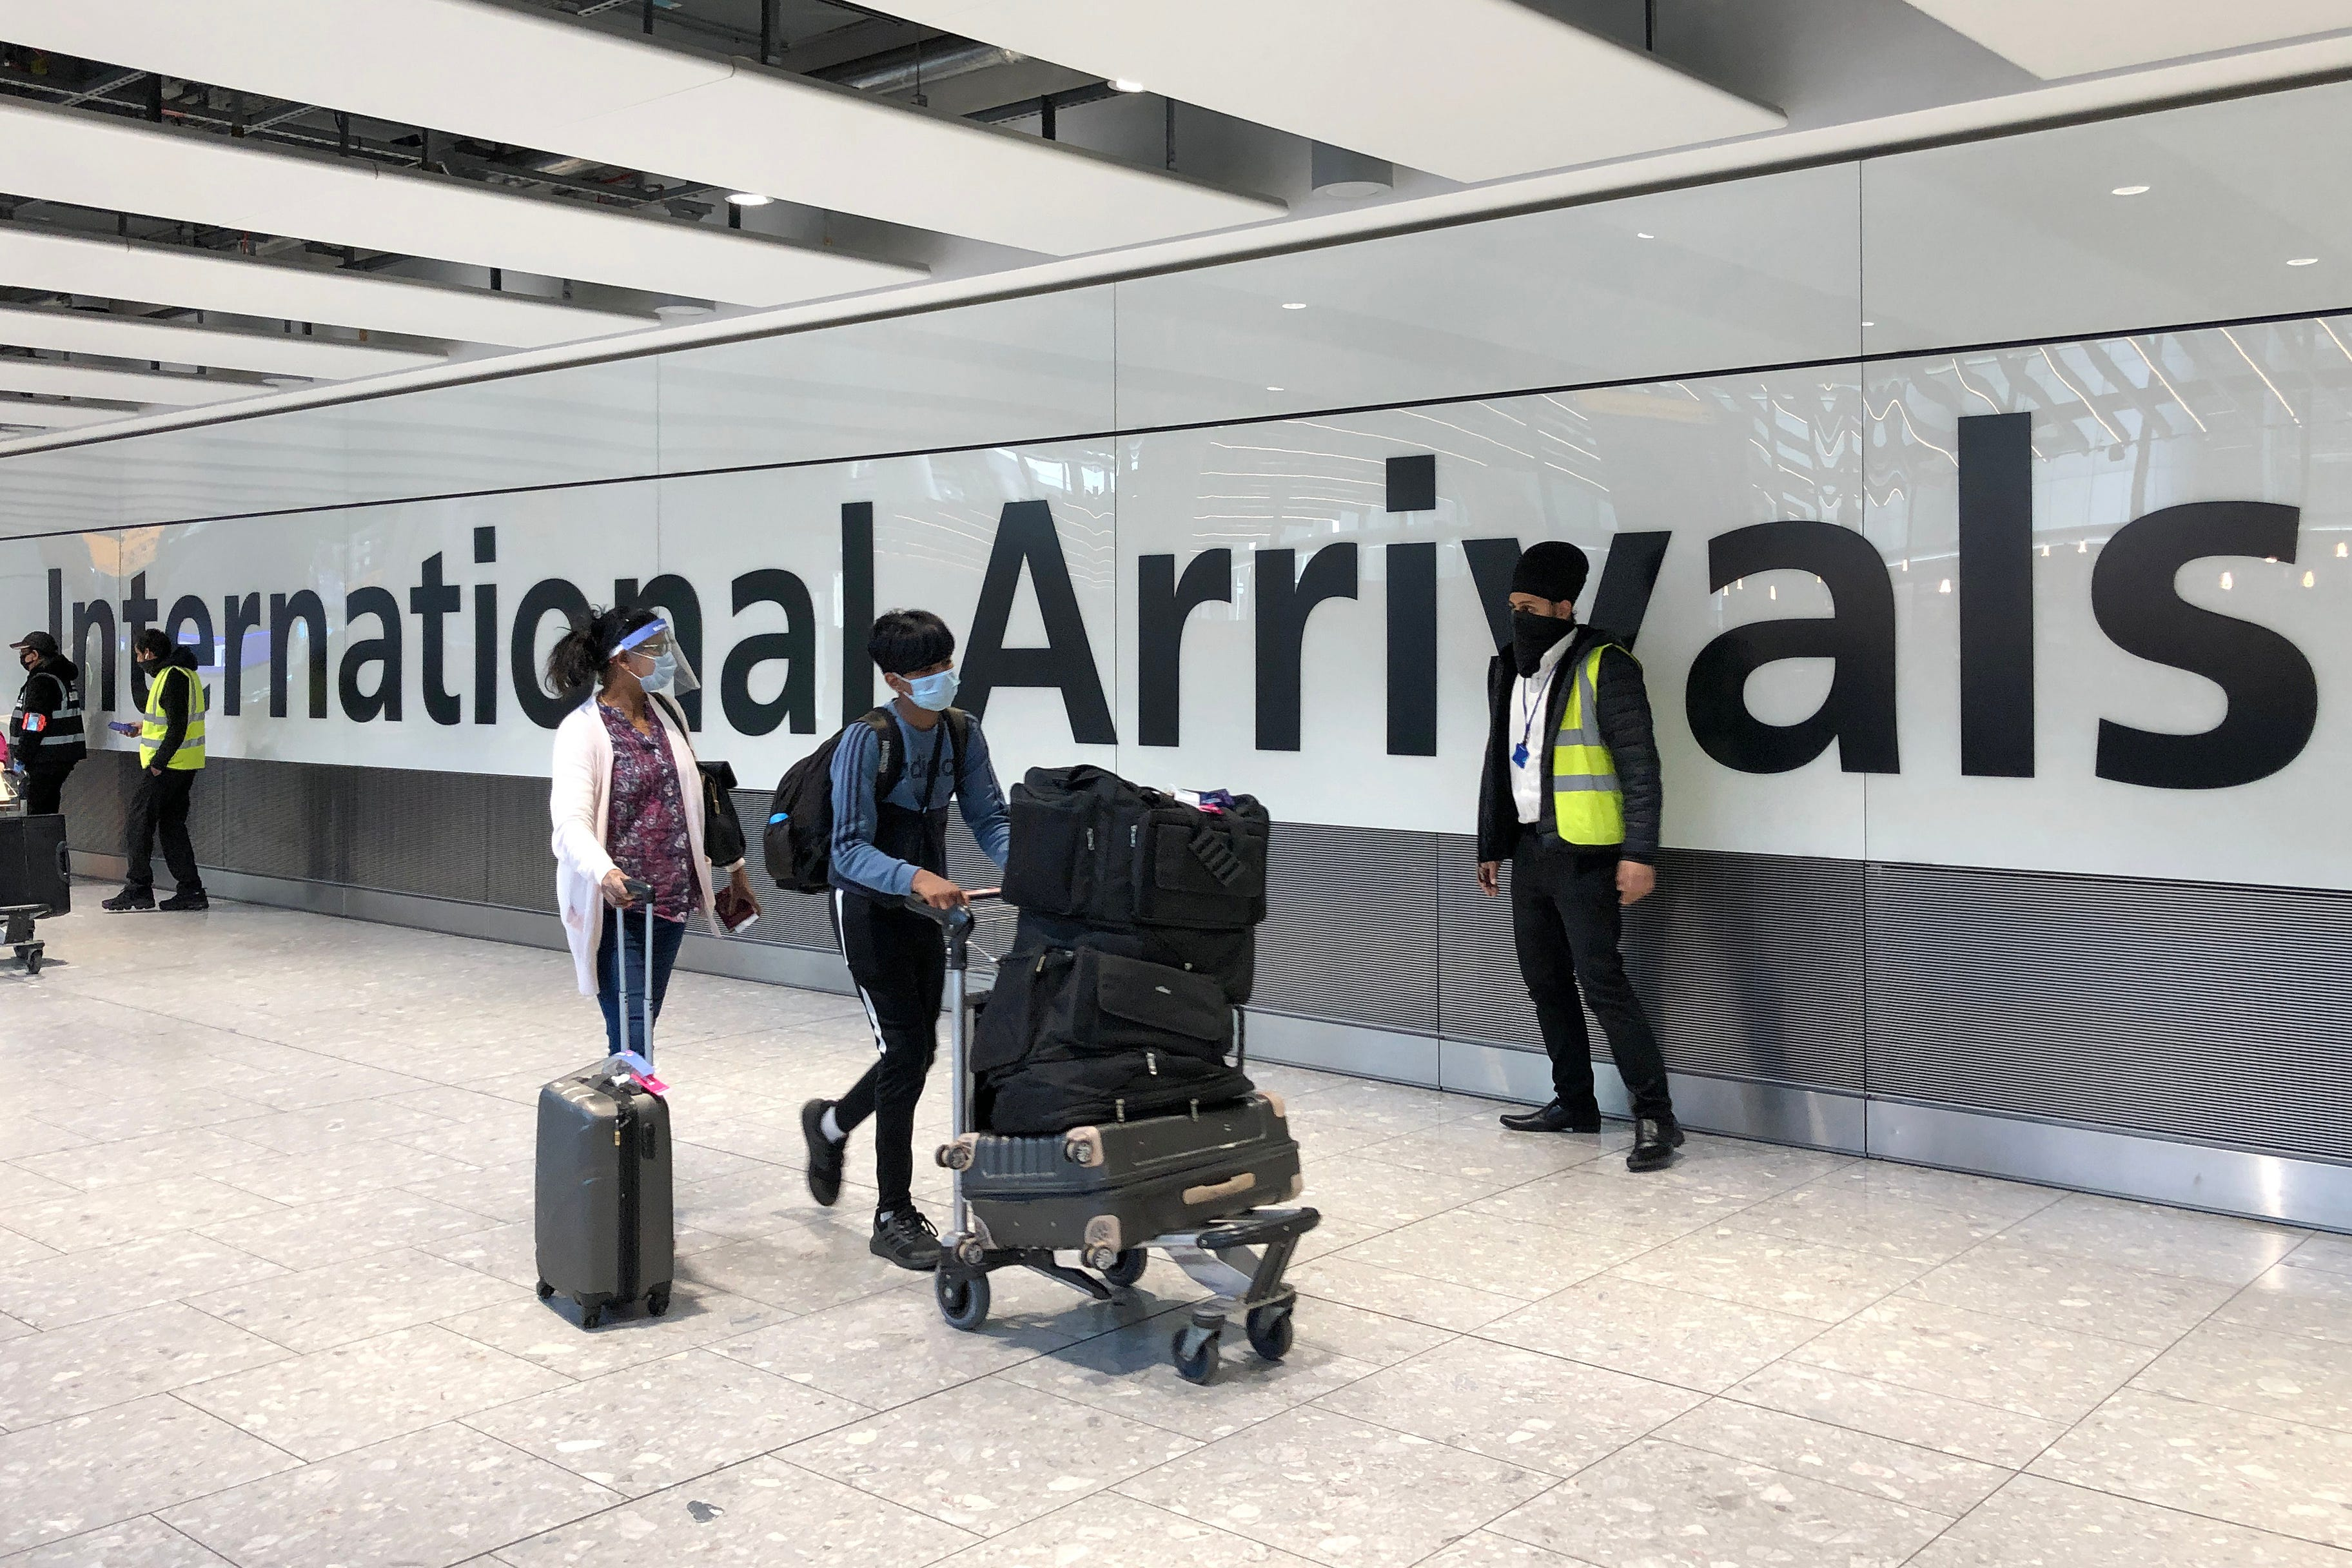 'Absolutely critical to both countries': US, UK airlines urge lifting of travel restrictions